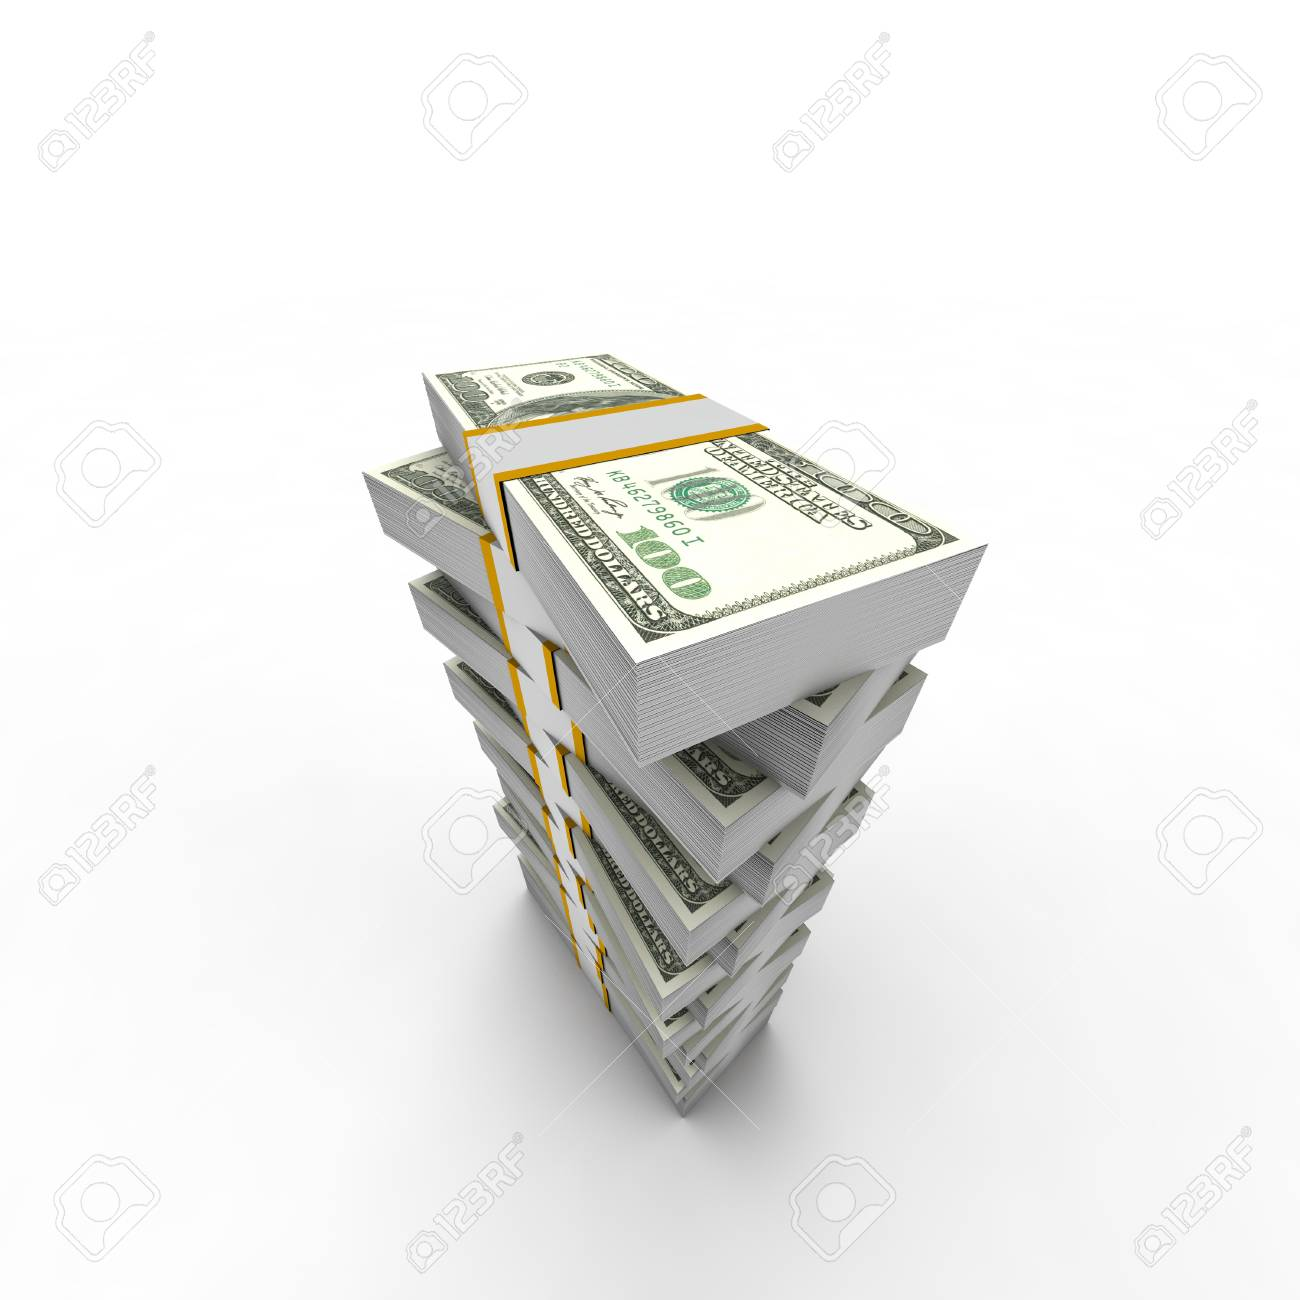 describing the financial resources made from dollar tower Stock Photo - 62468928